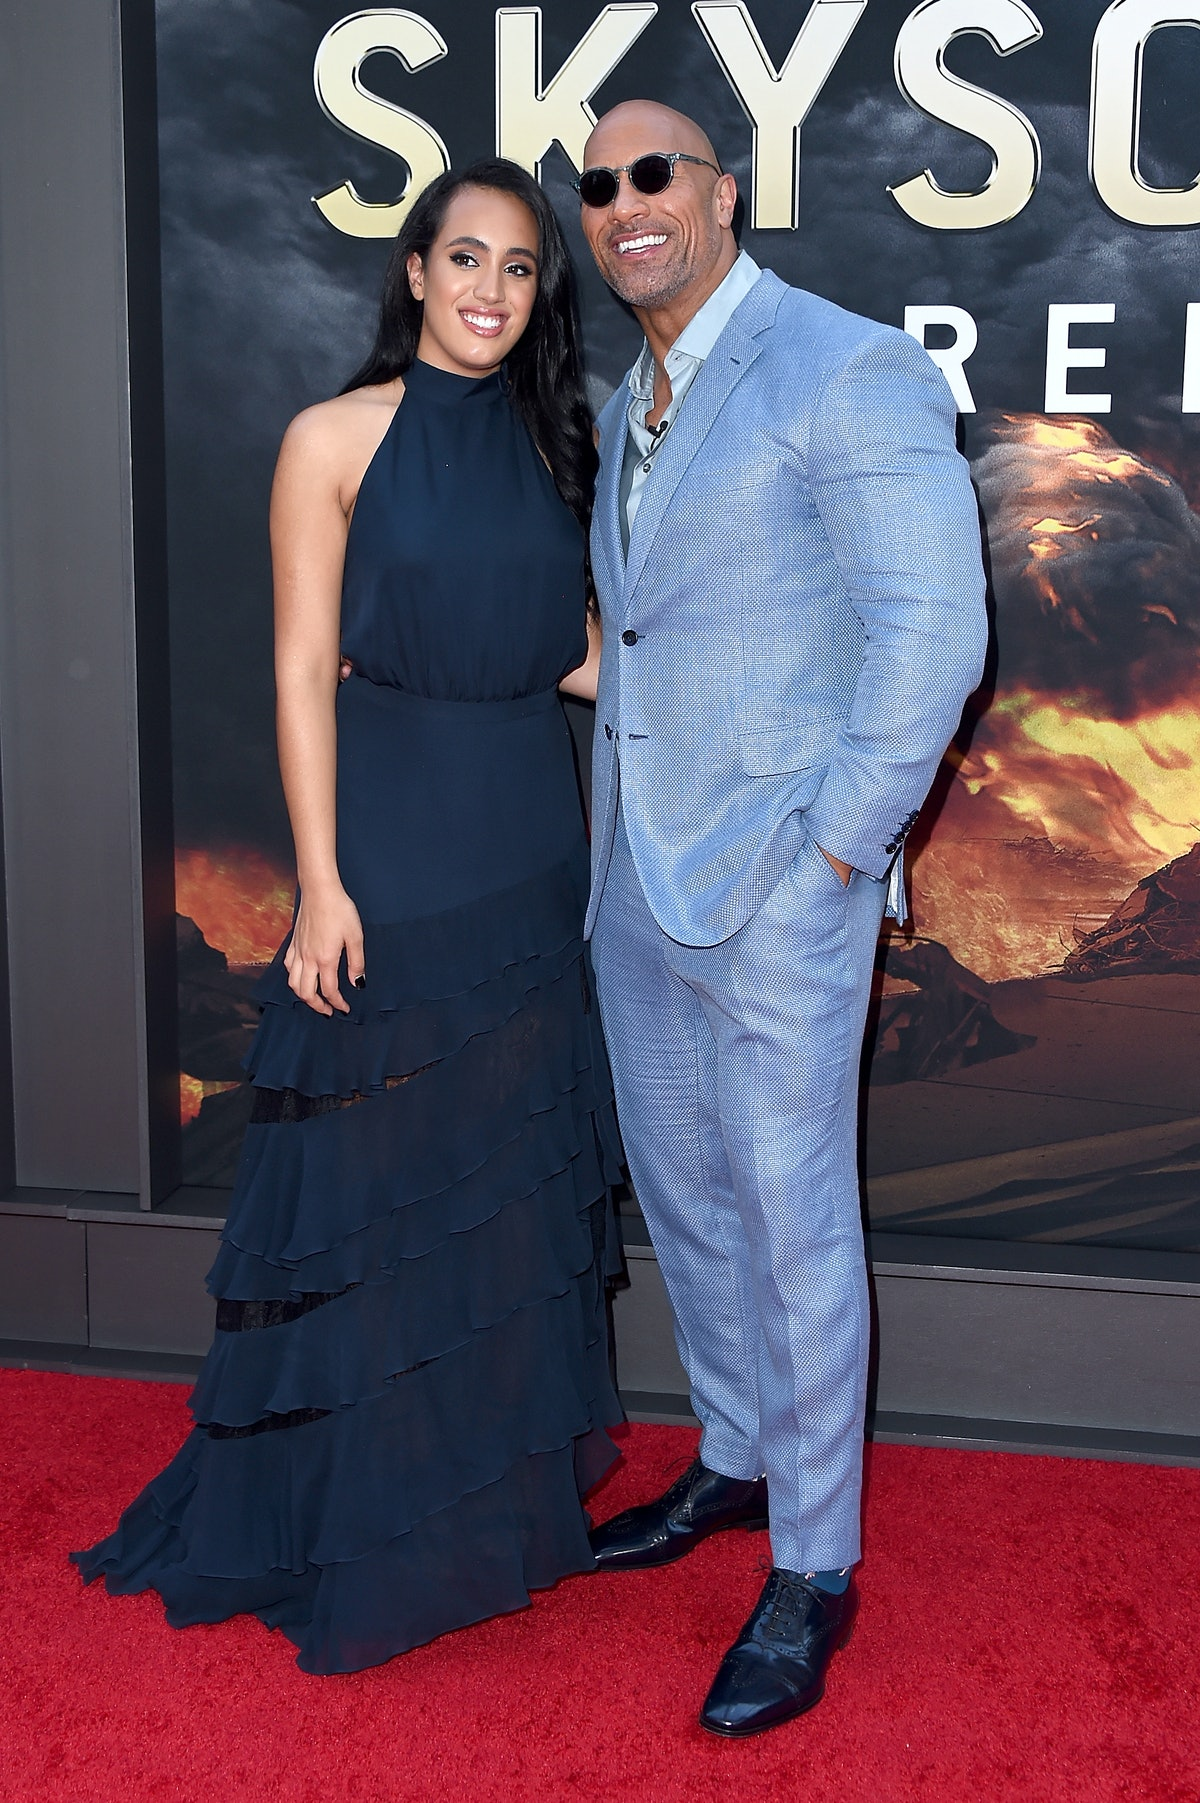 Dwayne Johnson Celebrated His Daughter's High School Graduation With The Most Dad Photos Ever